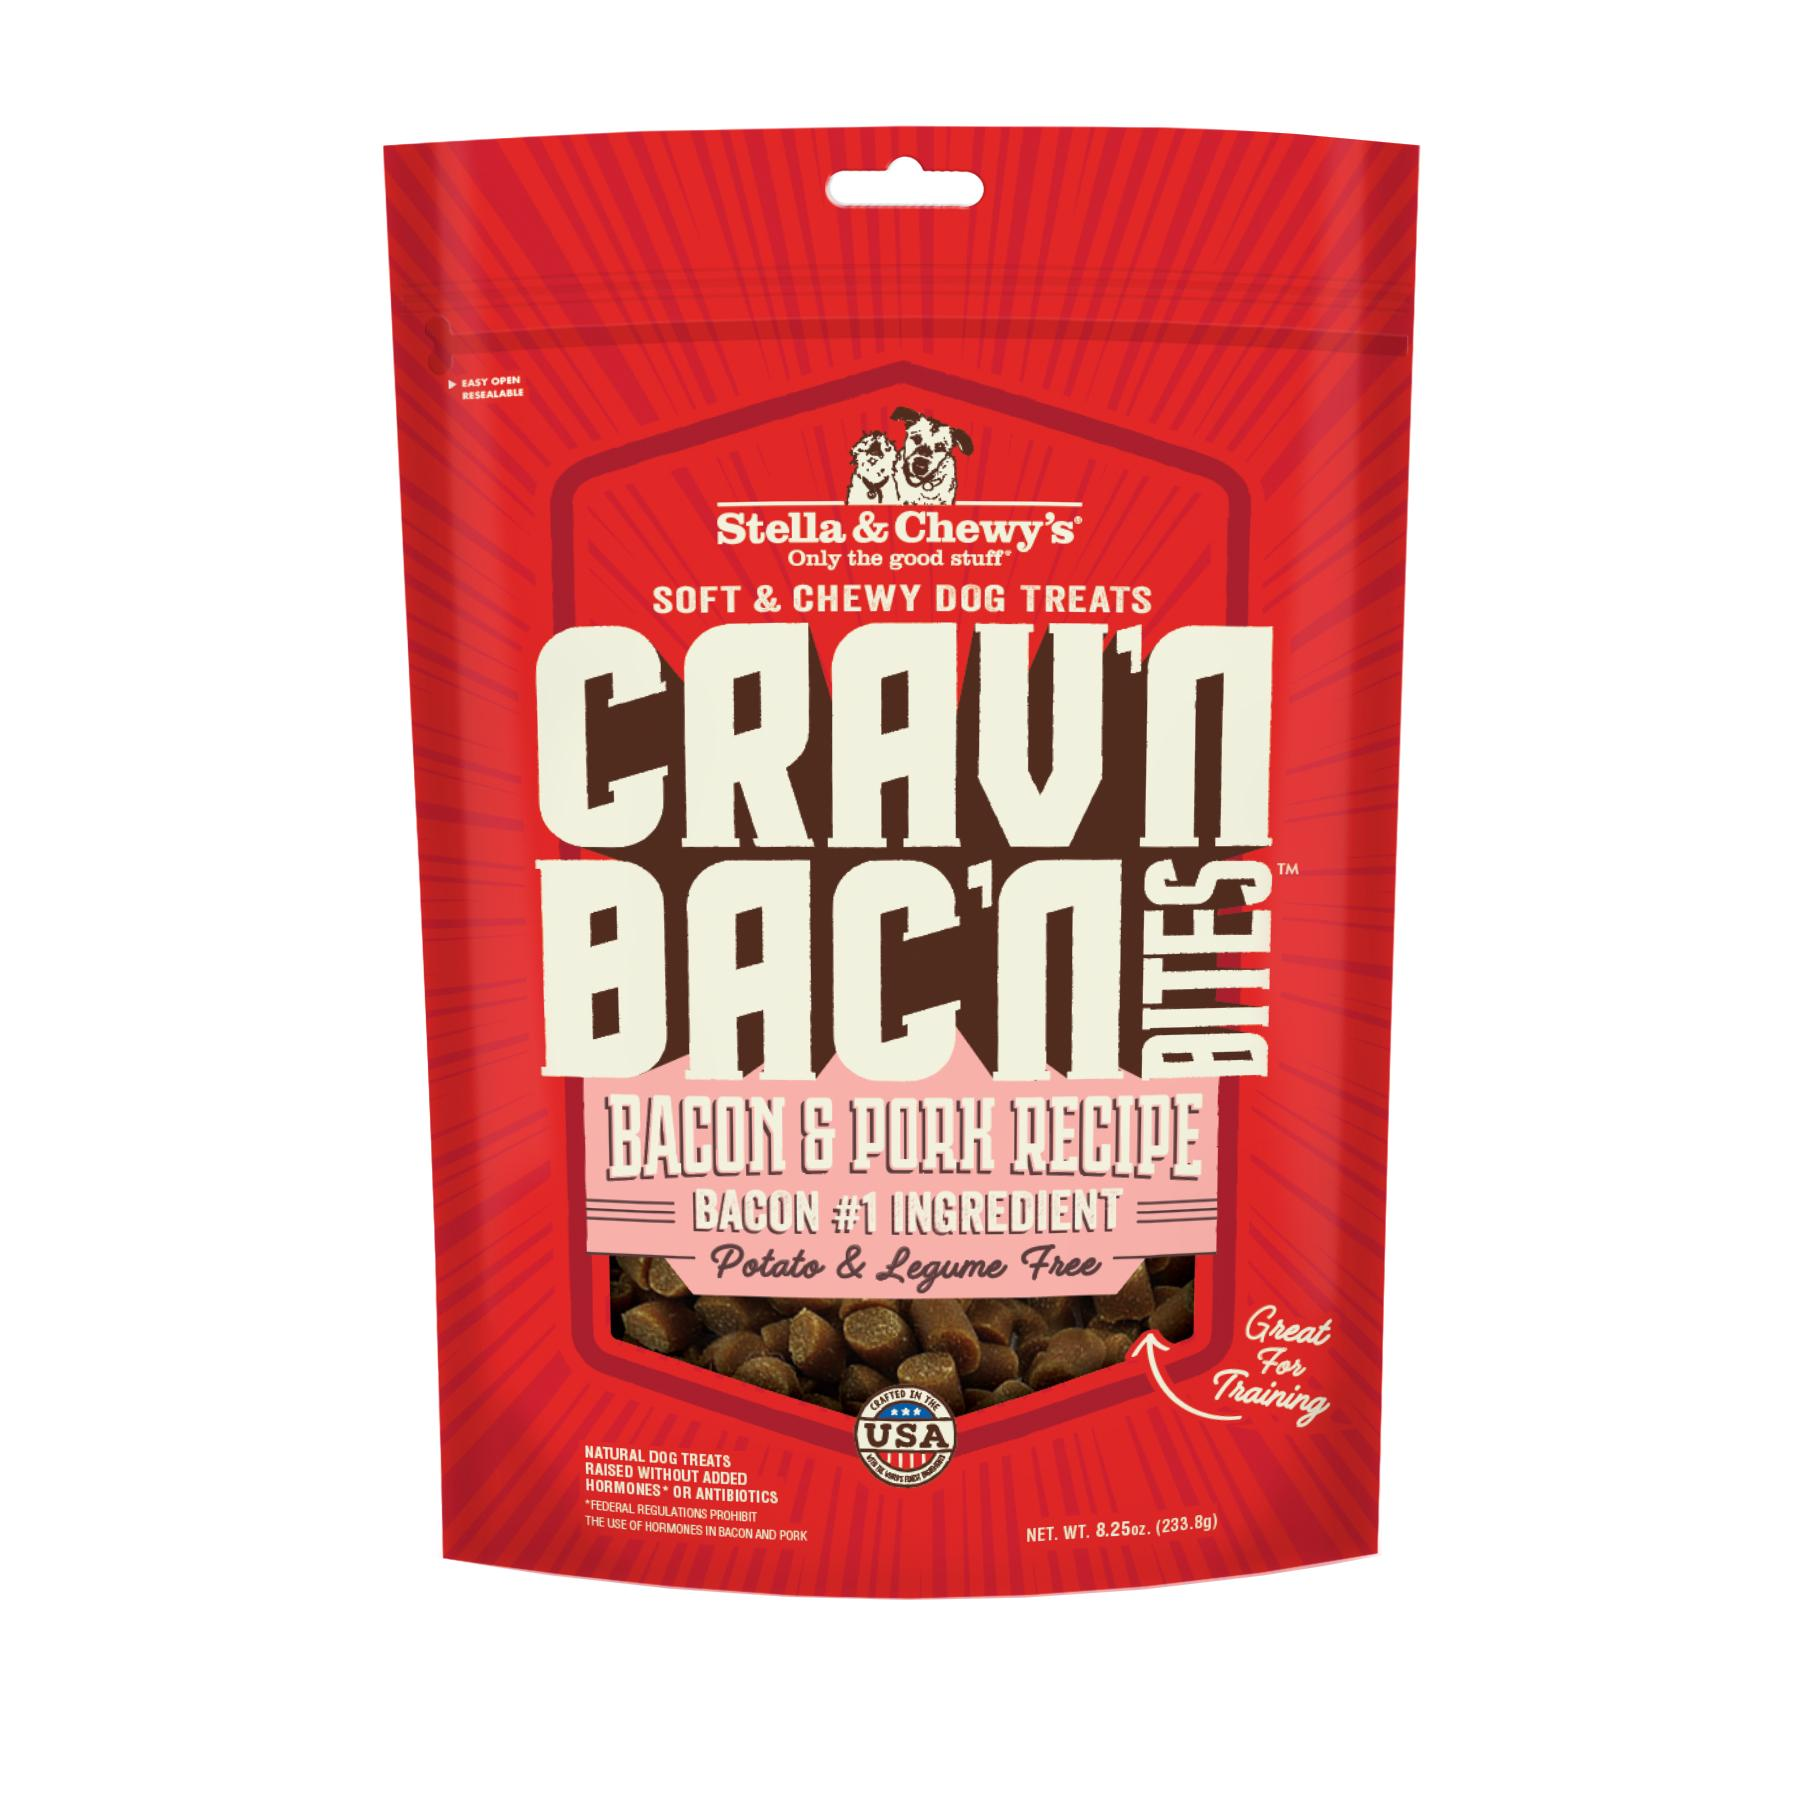 Stella & Chewy's Crav'n Bac'n Bites Bacon & Pork Recipe Dog Treats Image